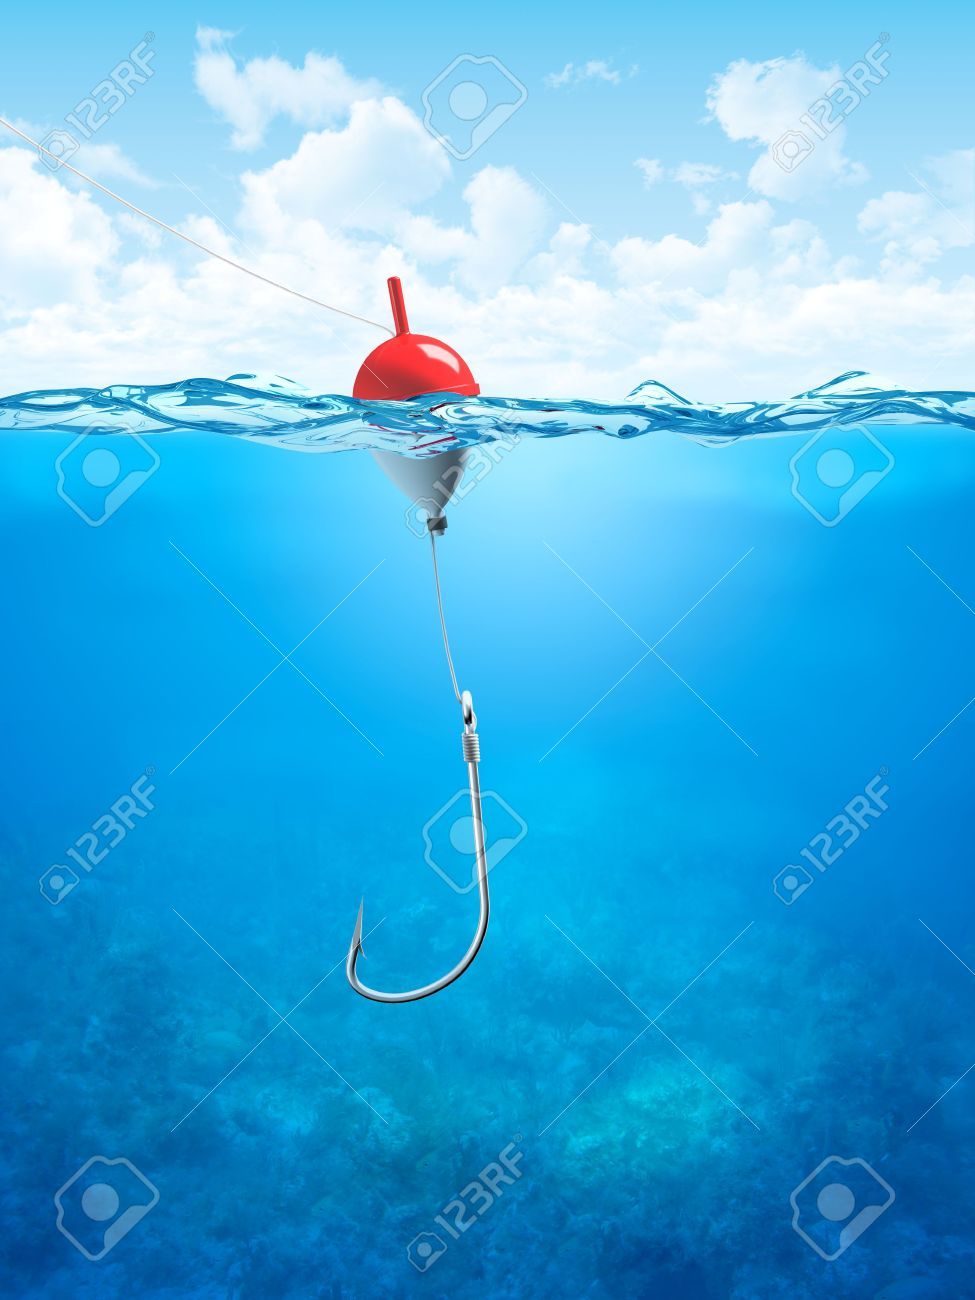 Float, fishing line and hook underwater (3d illustrations concepts series to use as backgrounds or workpieces) - 6465017